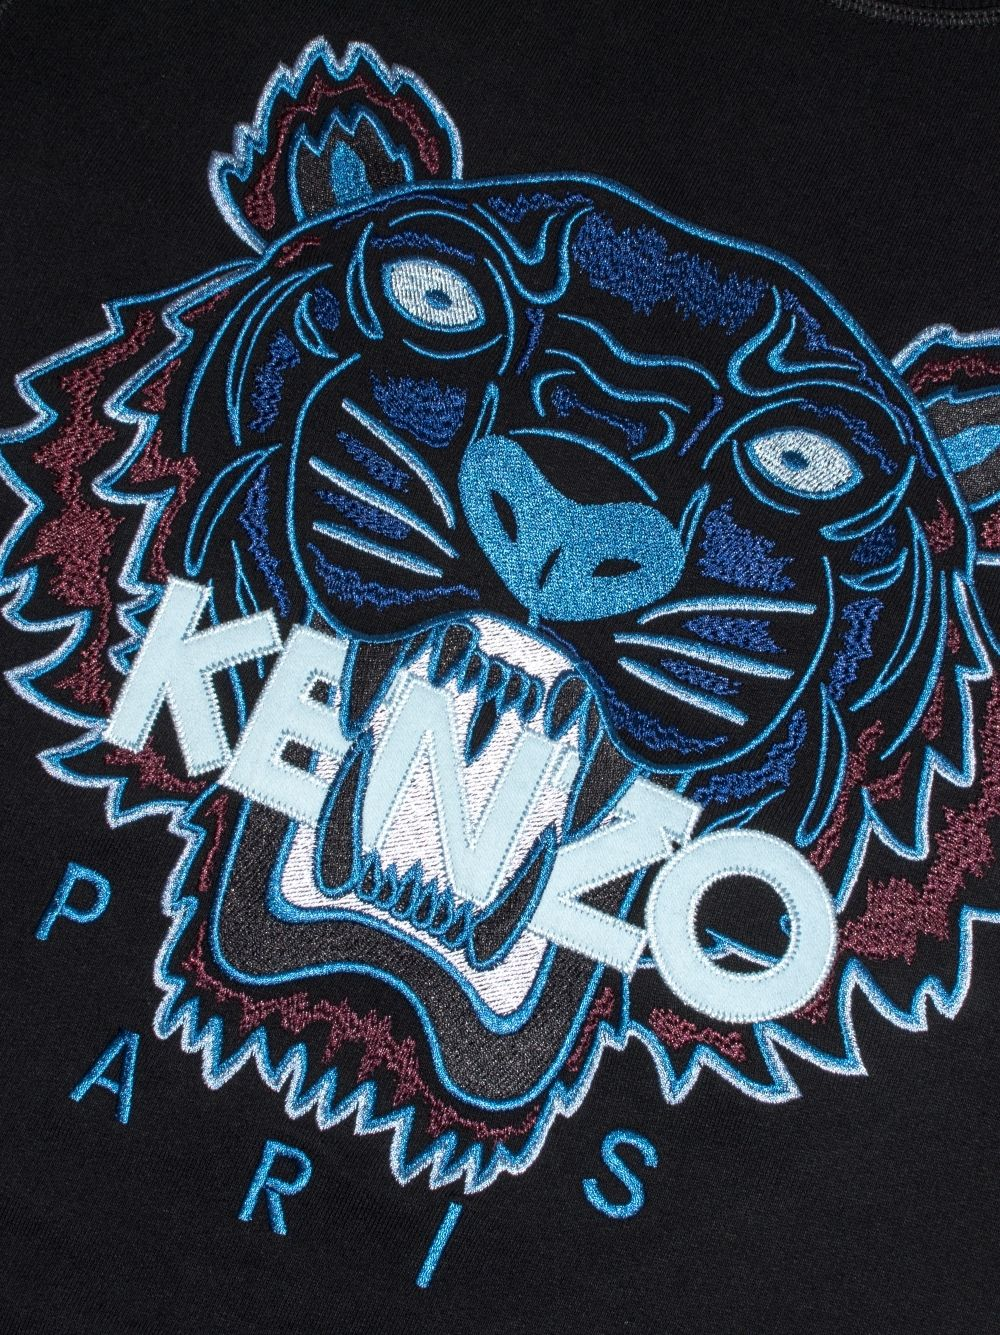 Kenzo Logo - Mens Kenzo Sweater | Shop Now For Spring Summer '16 Kenzo | Essential